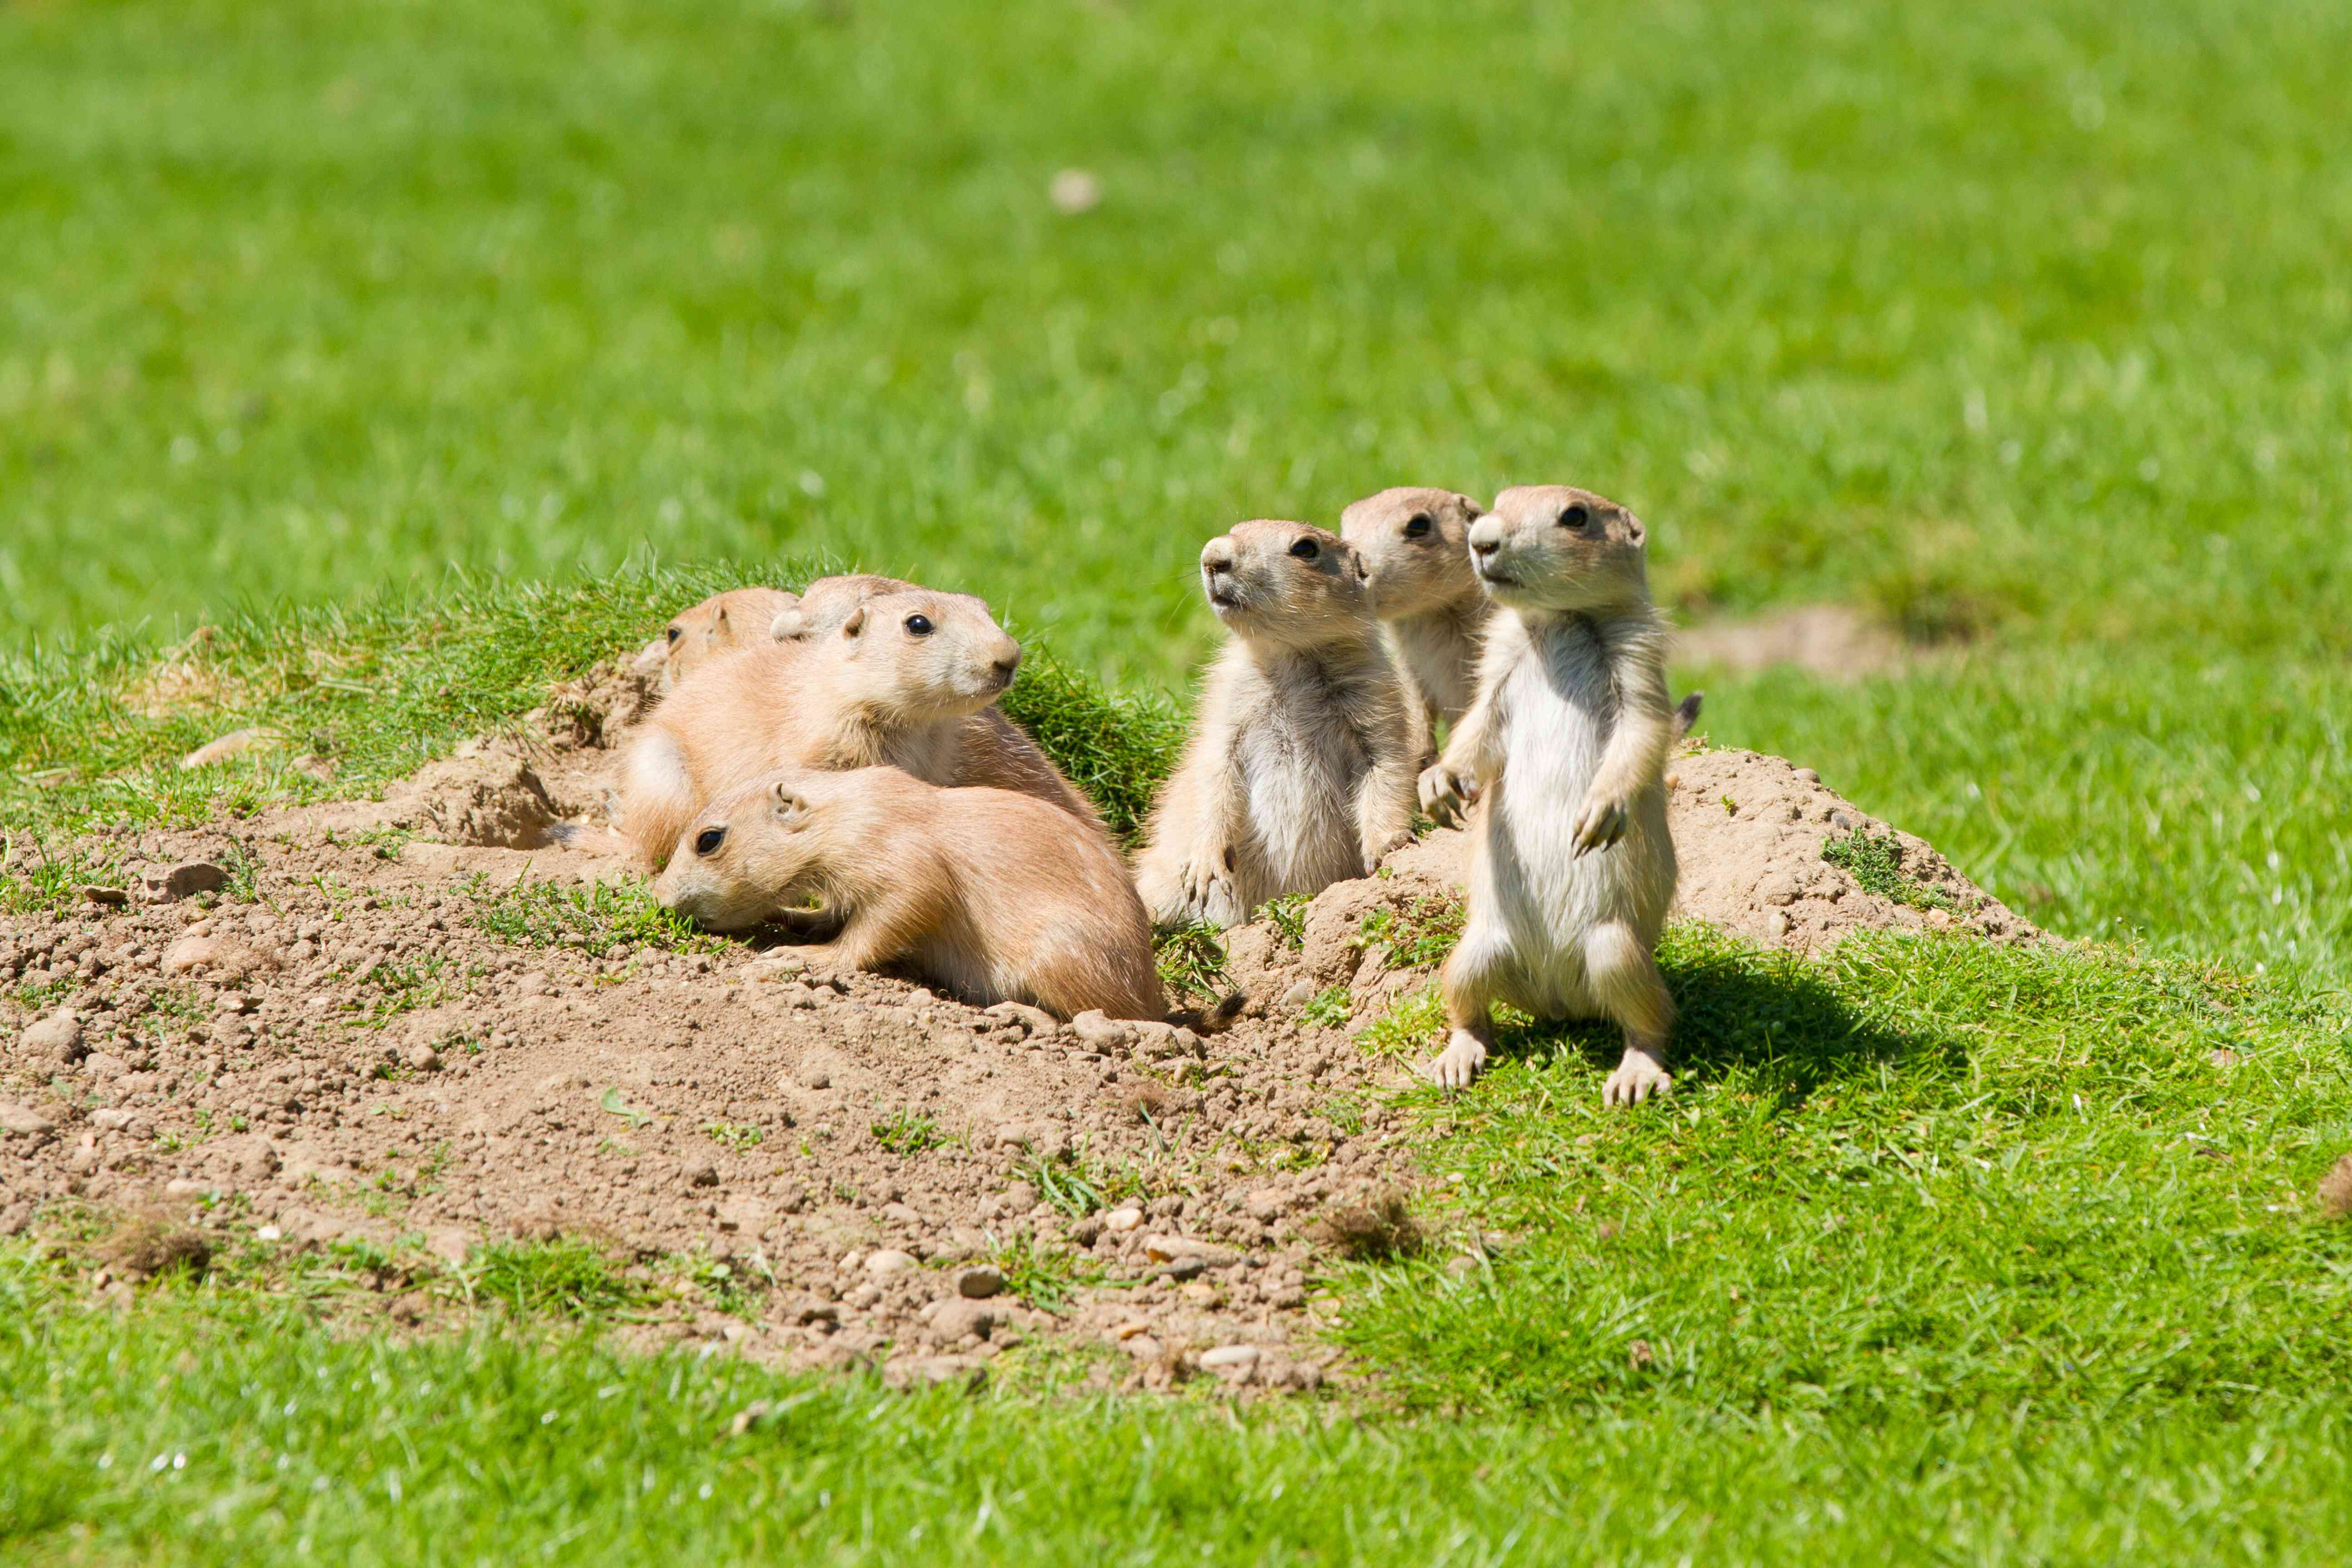 A family of prairie dogs exiting their burrow on a field of green grass with some looking off in the distance.